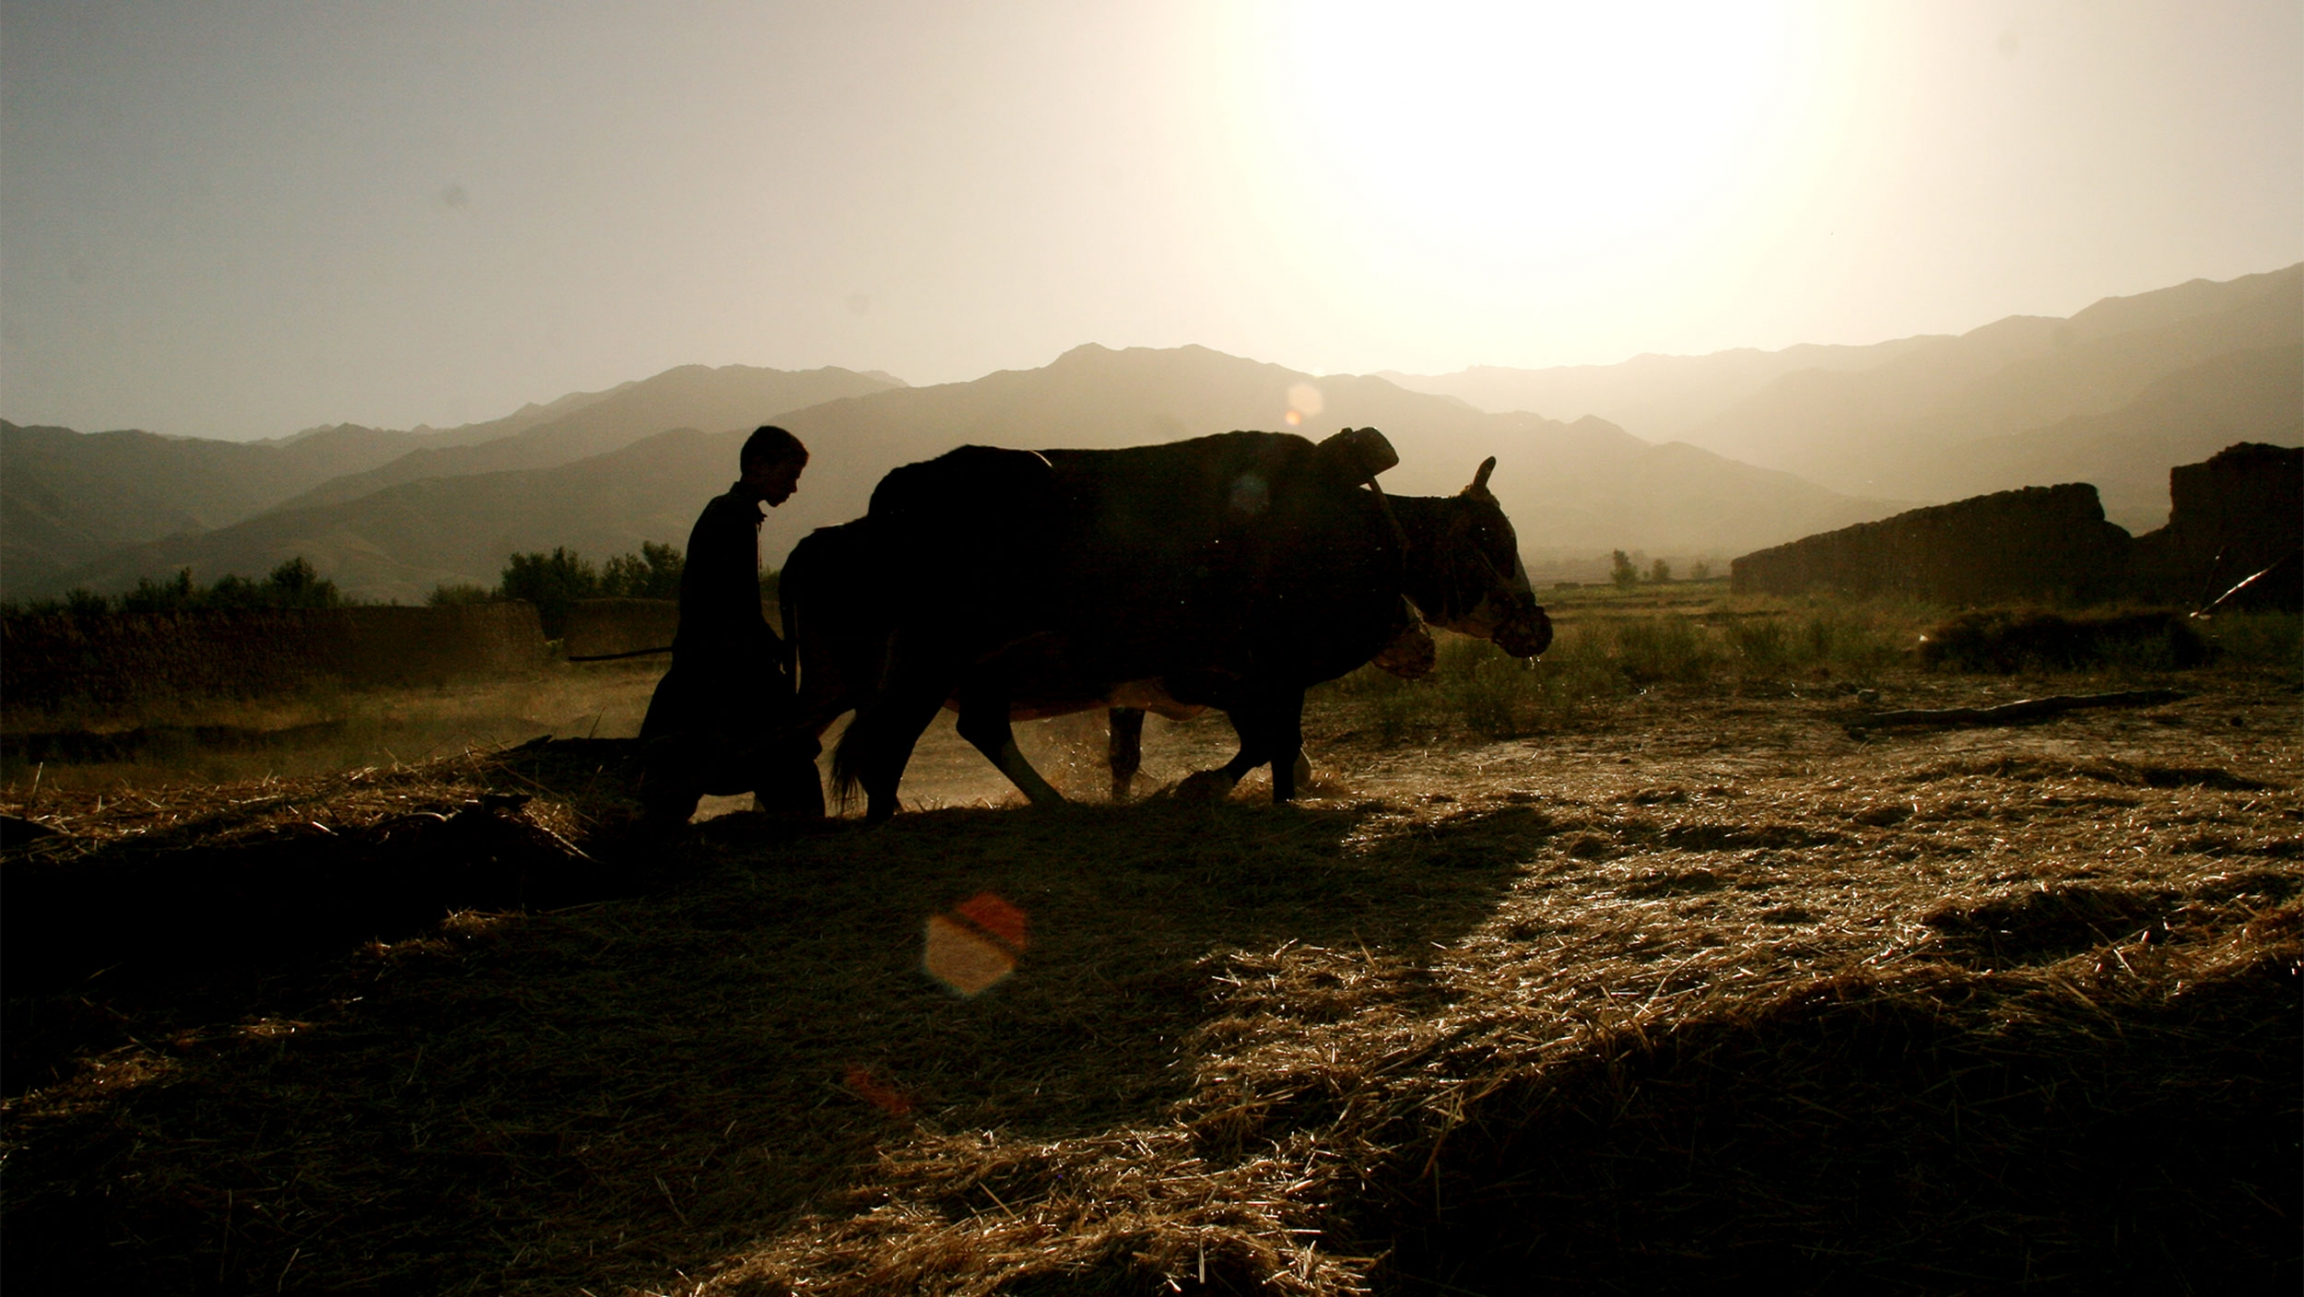 Shomali, a little north of Kabul, Afghanistan, July 18, 2005. After seven years of severe drought that impoverished farmers and made millions reliant on food handouts, Afghanistan enjoyed a bountiful harvest.